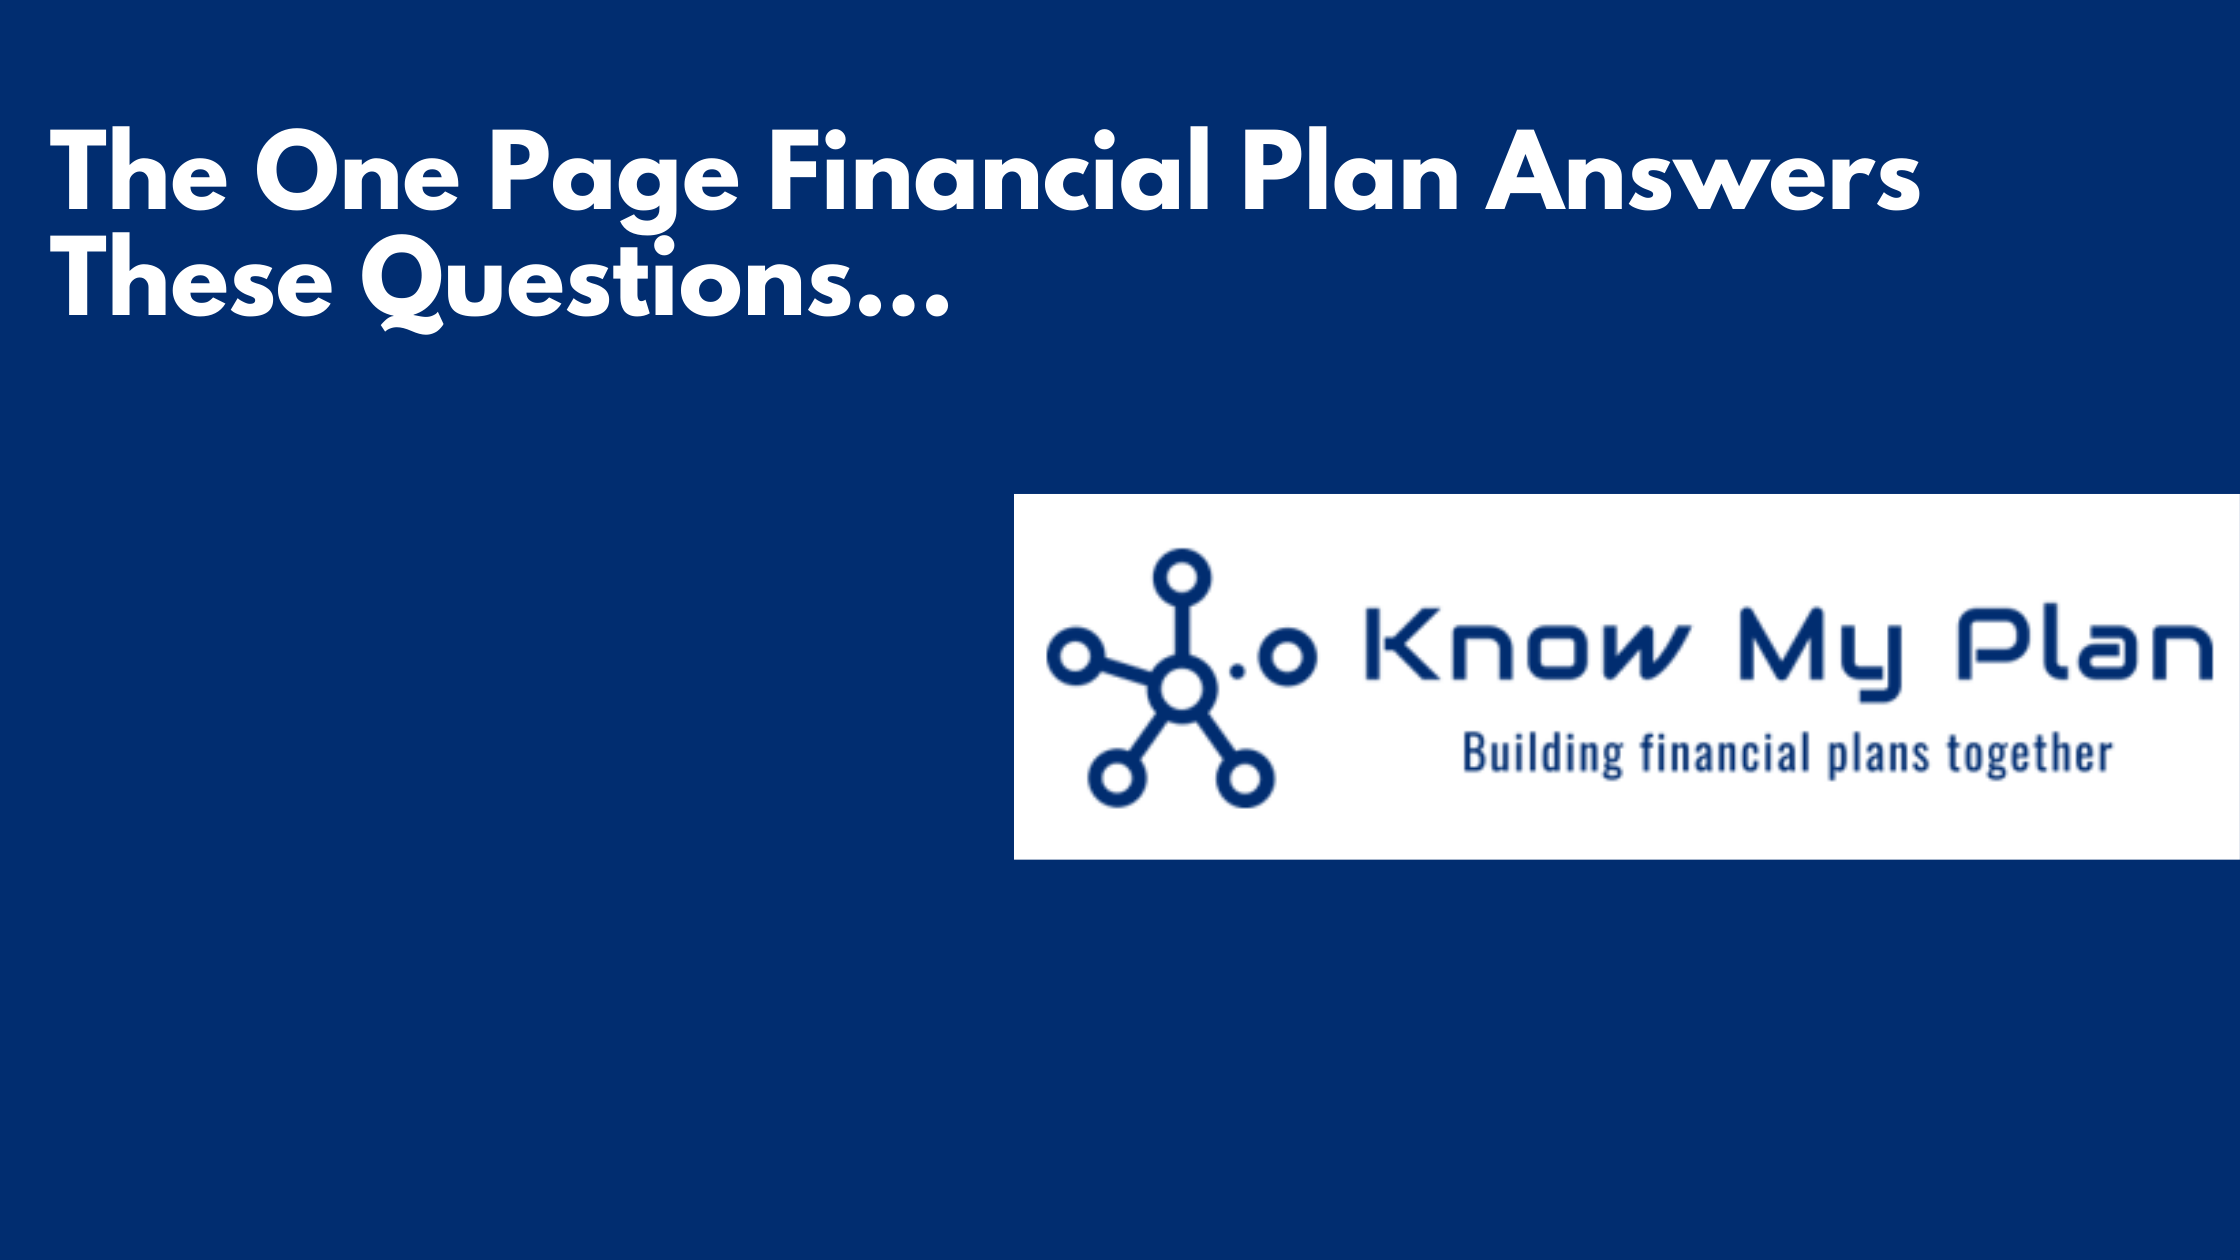 The One Page Financial Plan Answers These Questions... Thumbnail